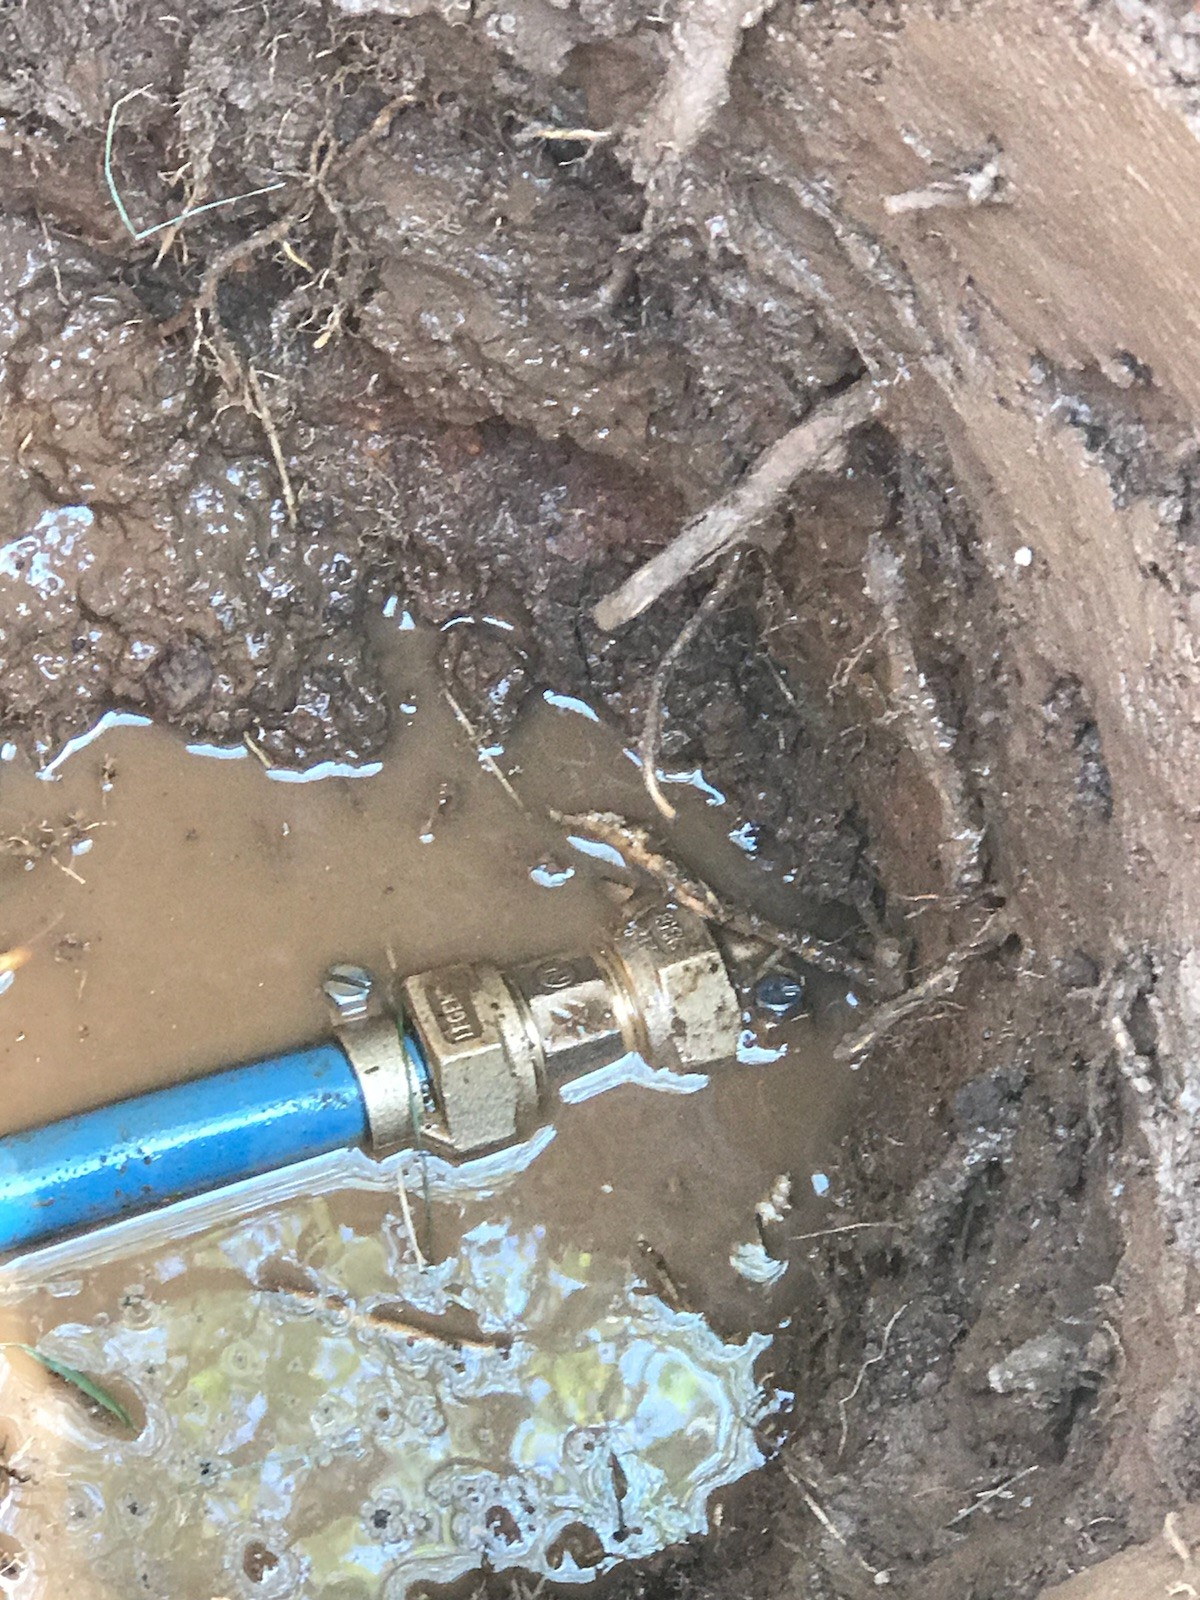 During - Repairing Main Water Line in Springfield, MO